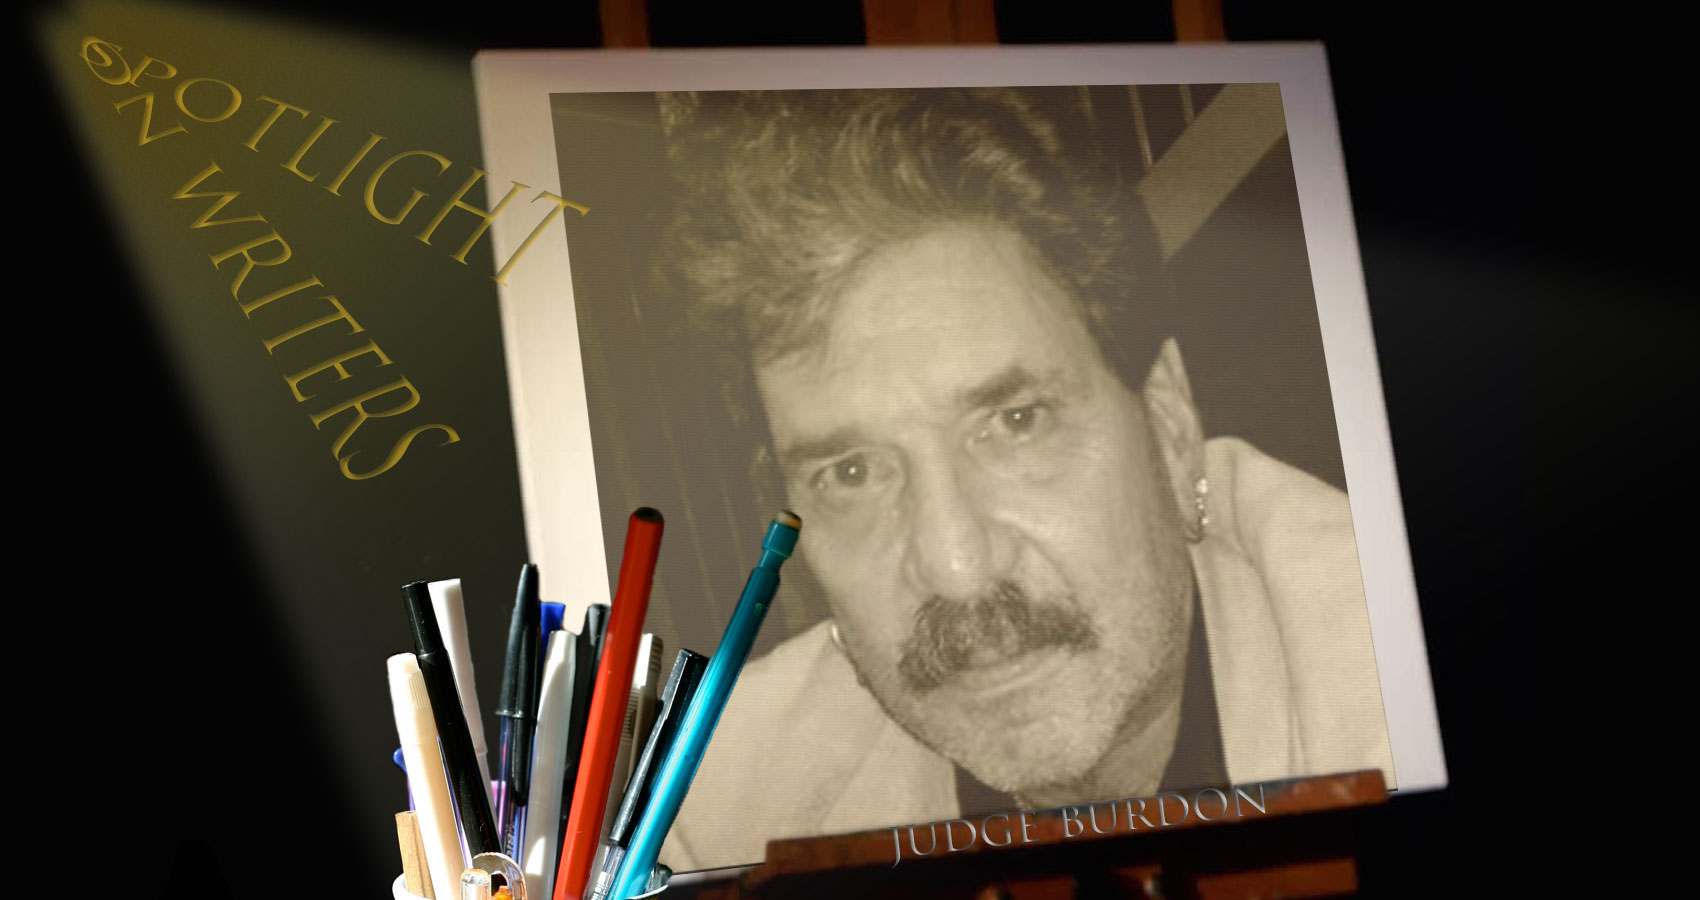 Spotlight On Writers - Judge Burdon, an interview at Spillwords.com